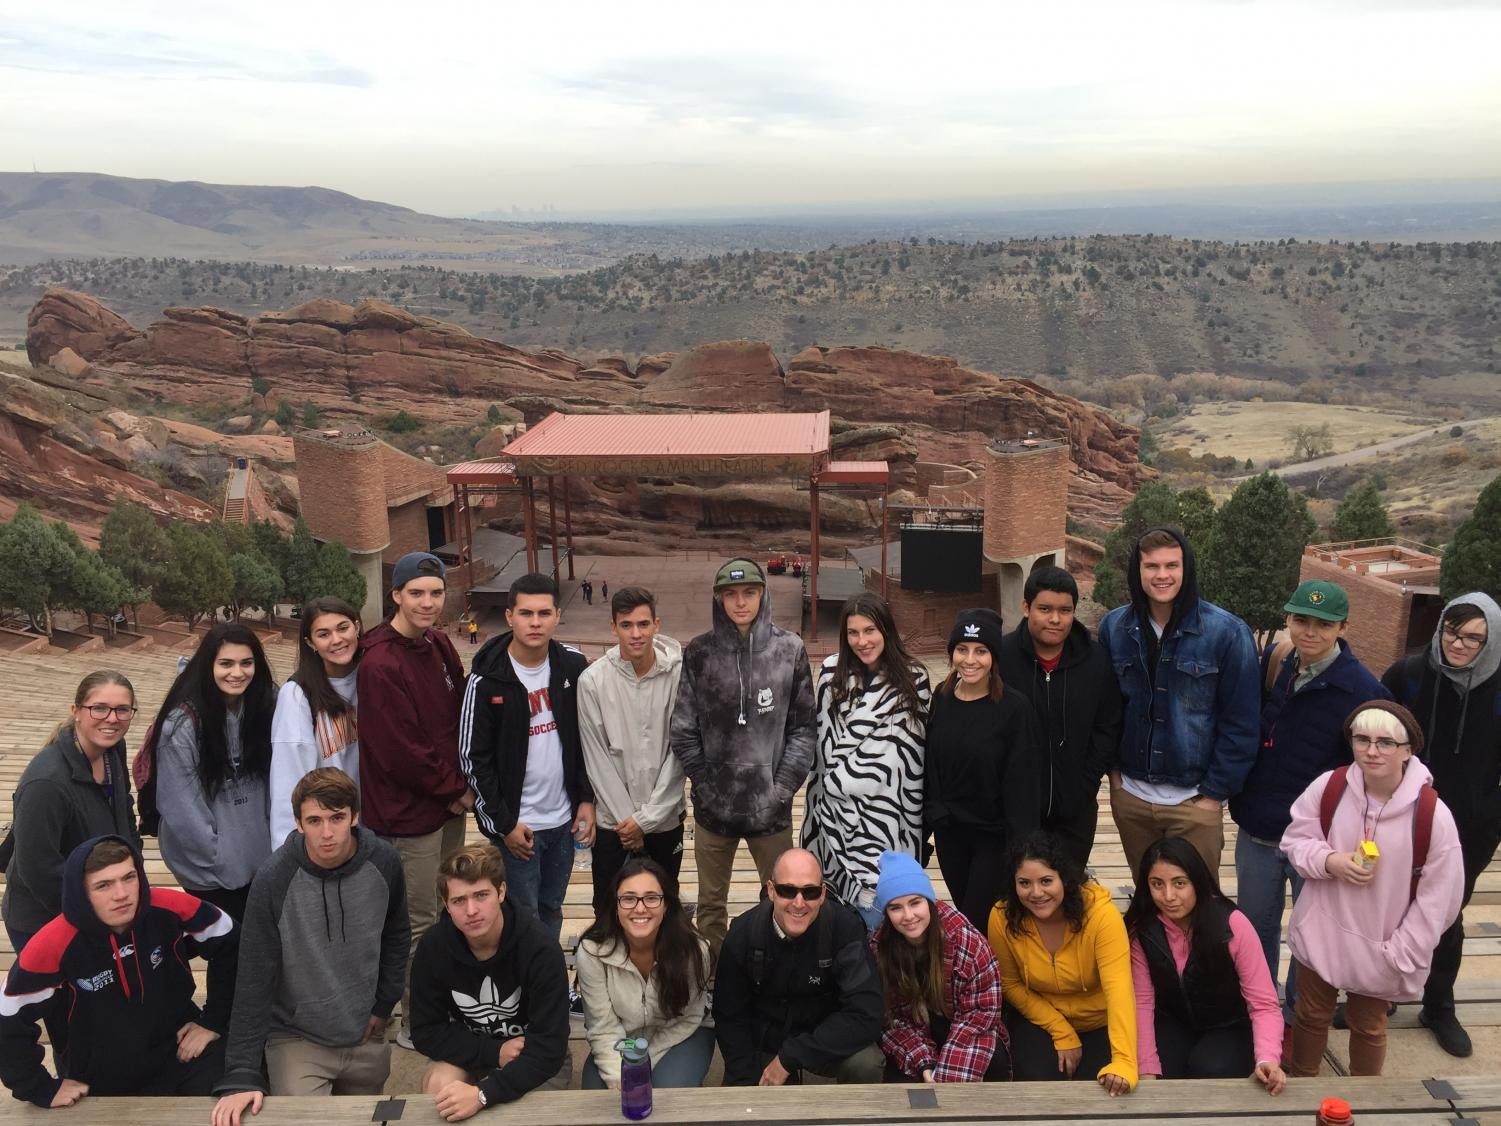 BHS Geology students gather for lunch at Red Rocks Amphitheater to study the geology of the amphitheater comprised of a 300 million year old rock formation (fountain formation) that has been uplifted from depths as deep as 10,000 feet below.